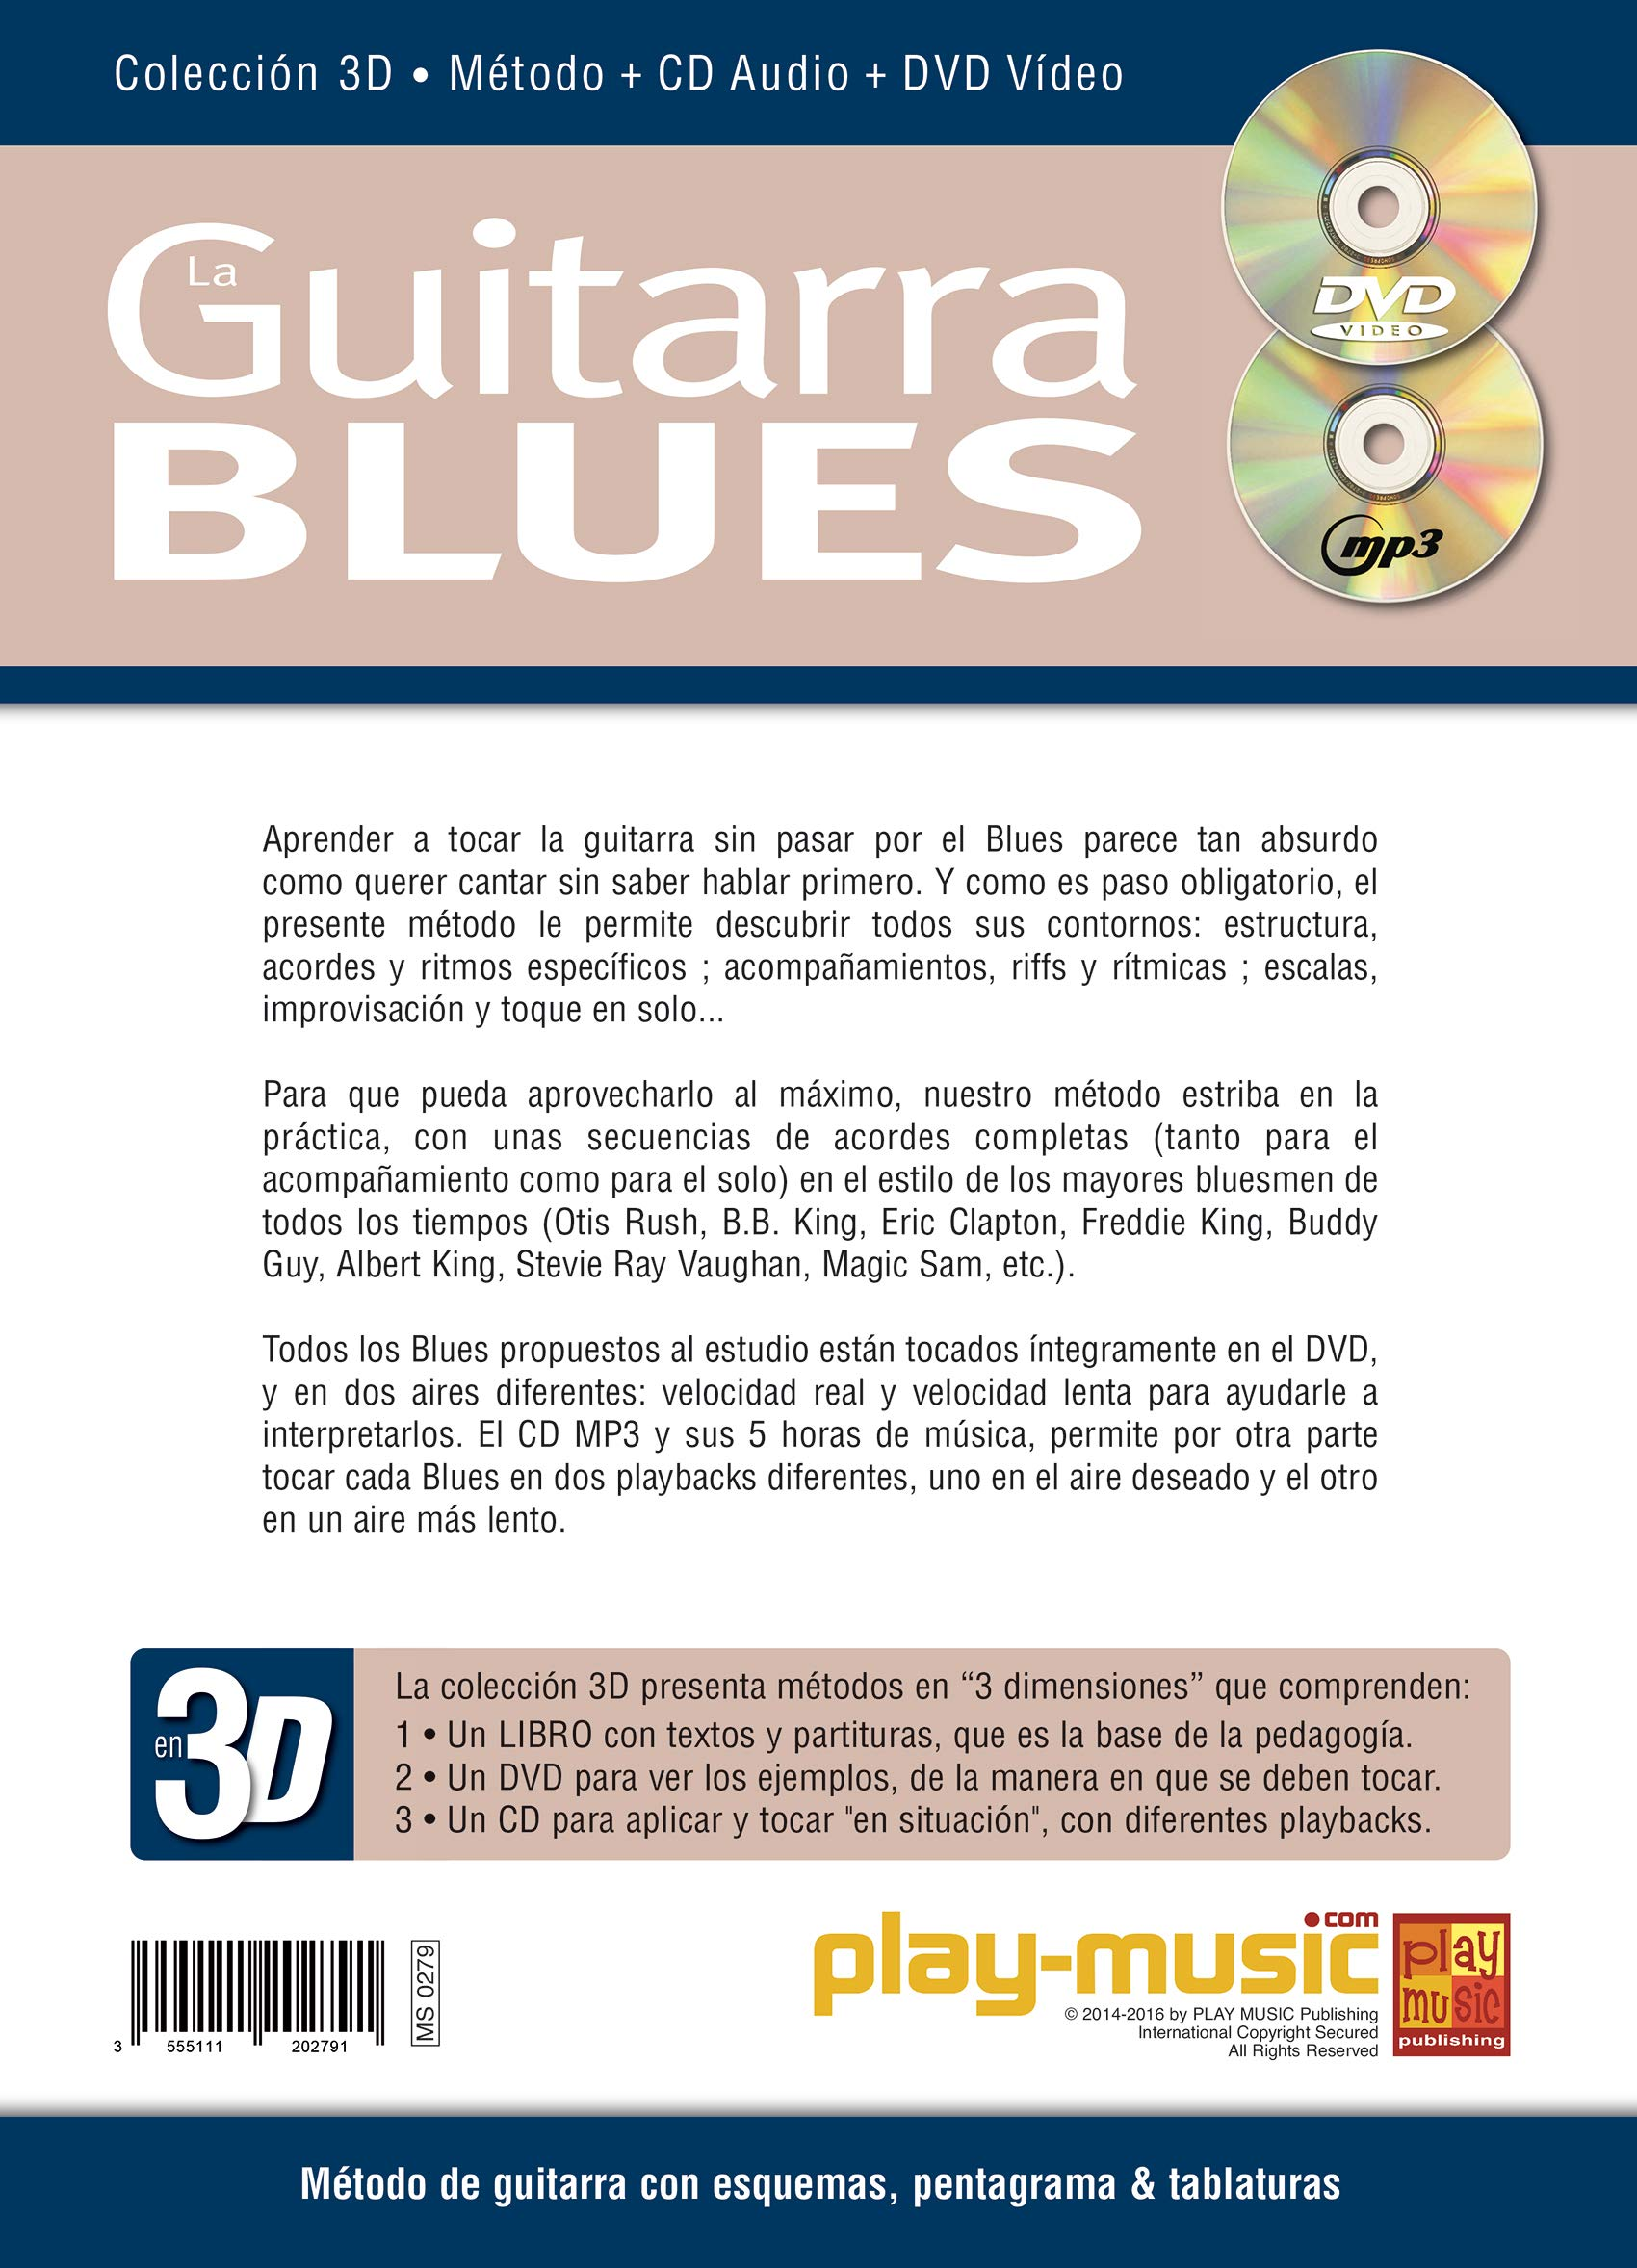 La guitarra blues en 3D - 1 Libro + 1 CD + 1 DVD: Amazon.es: Tomas ...